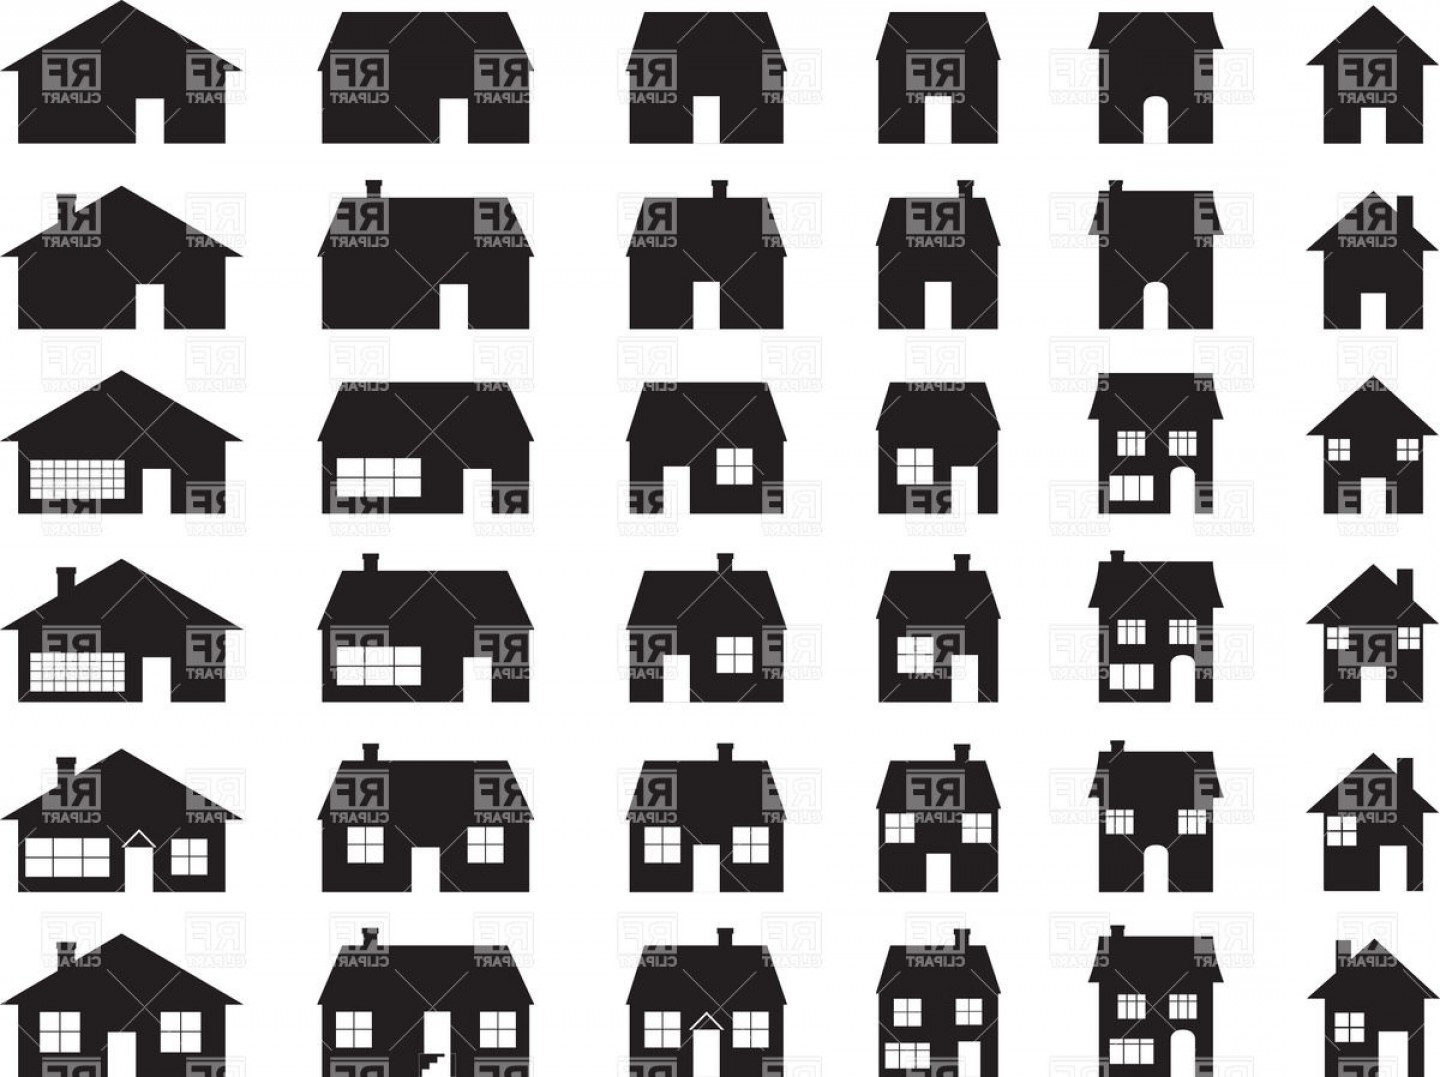 House Clip Art Vector: House Silhouette Of Suburban Building Vector Clipart